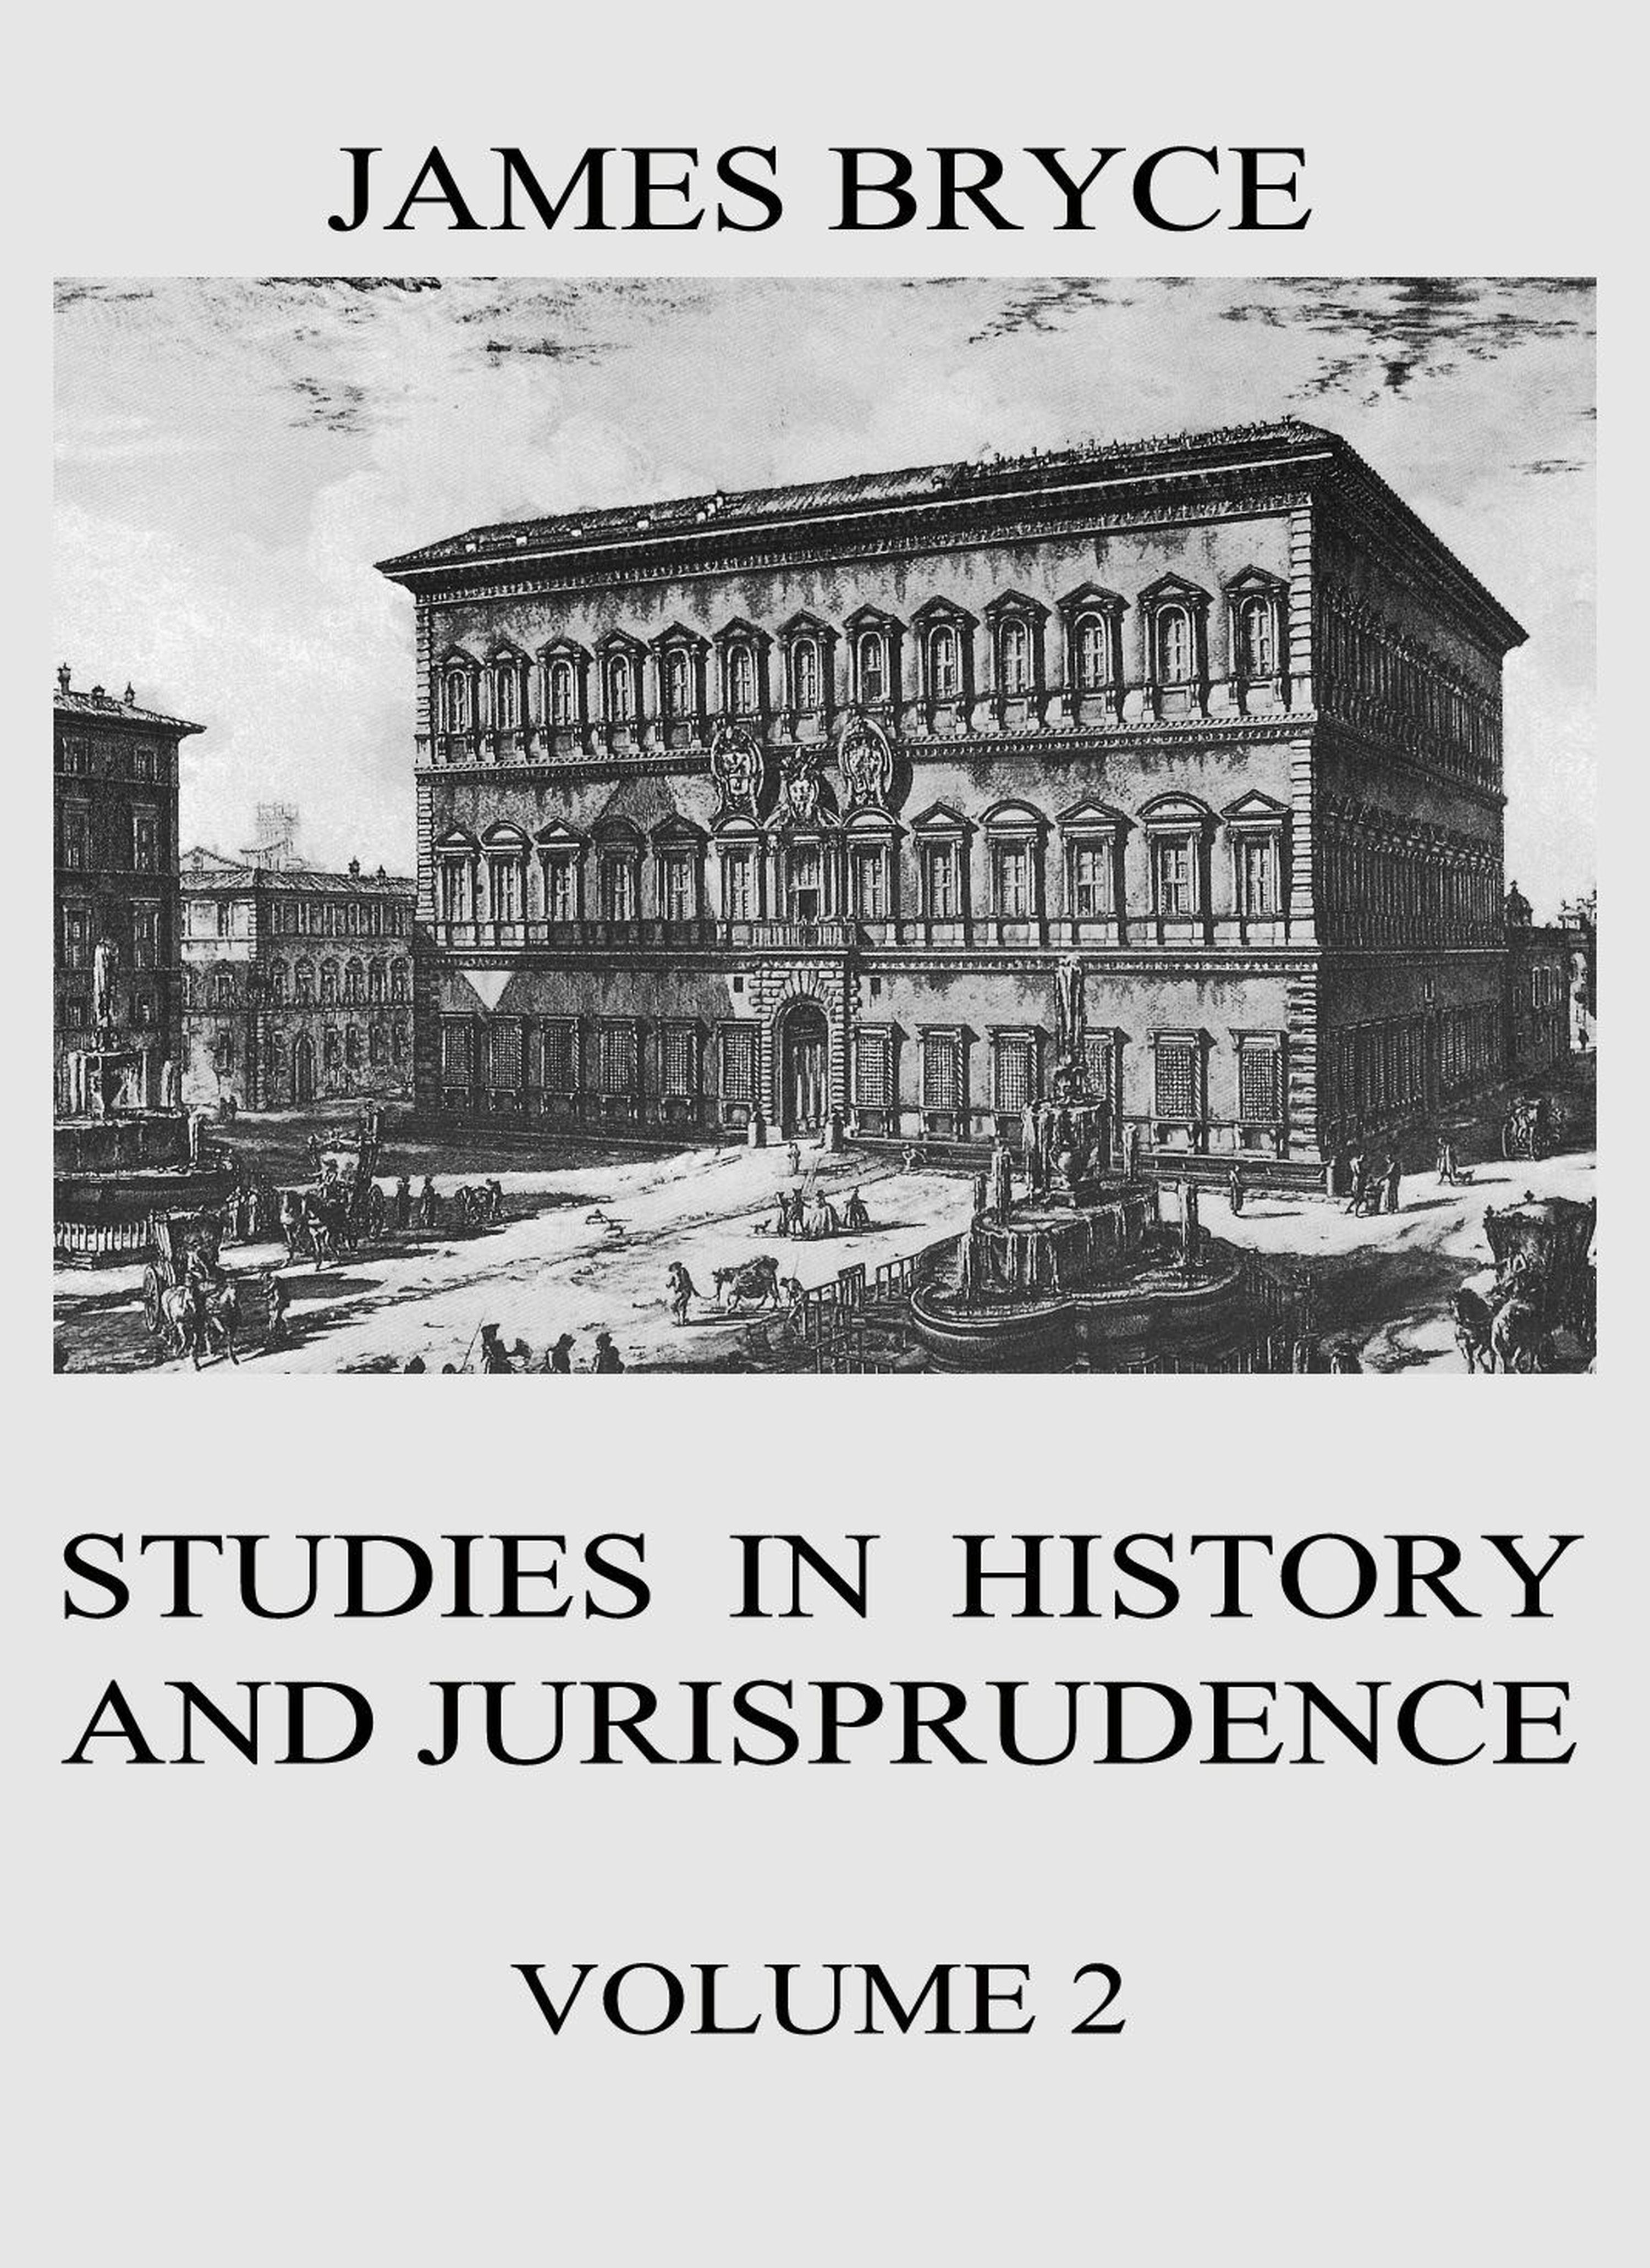 Viscount James Bryce Studies in History and Jurisprudence, Vol. 2 globalistics and globalization studies big history